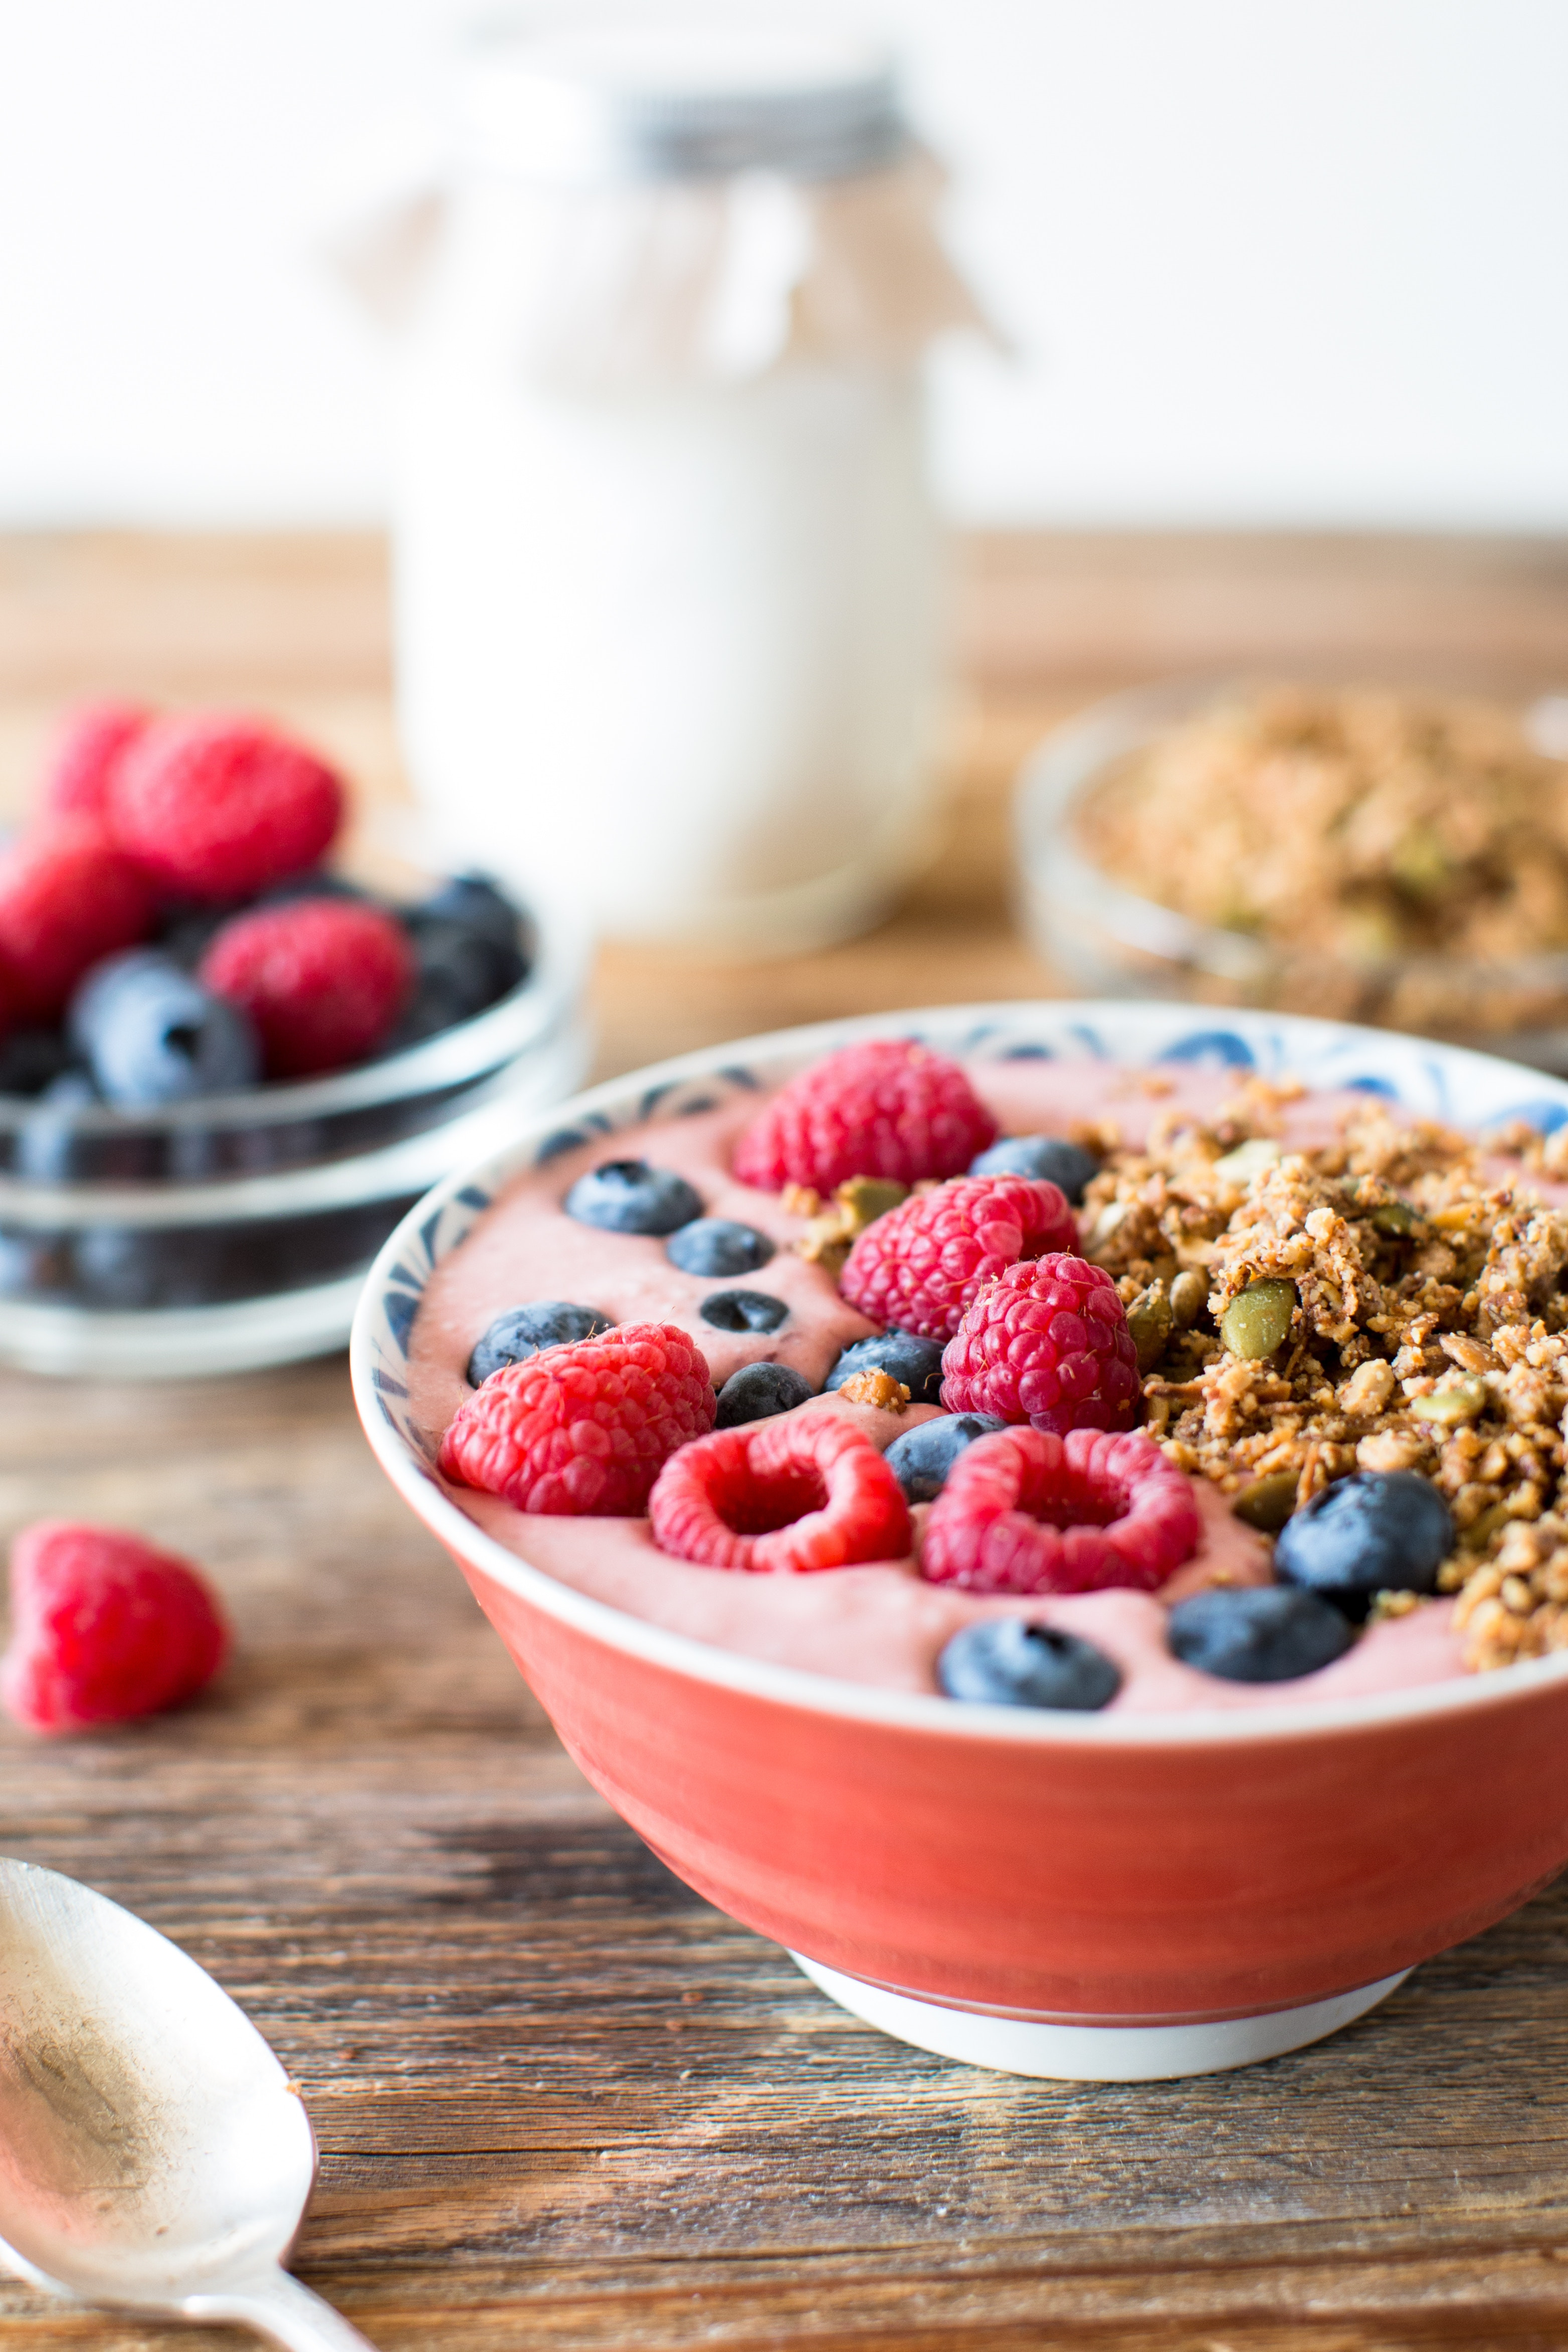 Can You Eat Yogurt On Keto Diet  13 Keto Diet Foods That Are Truly Satisfying Hot Beauty